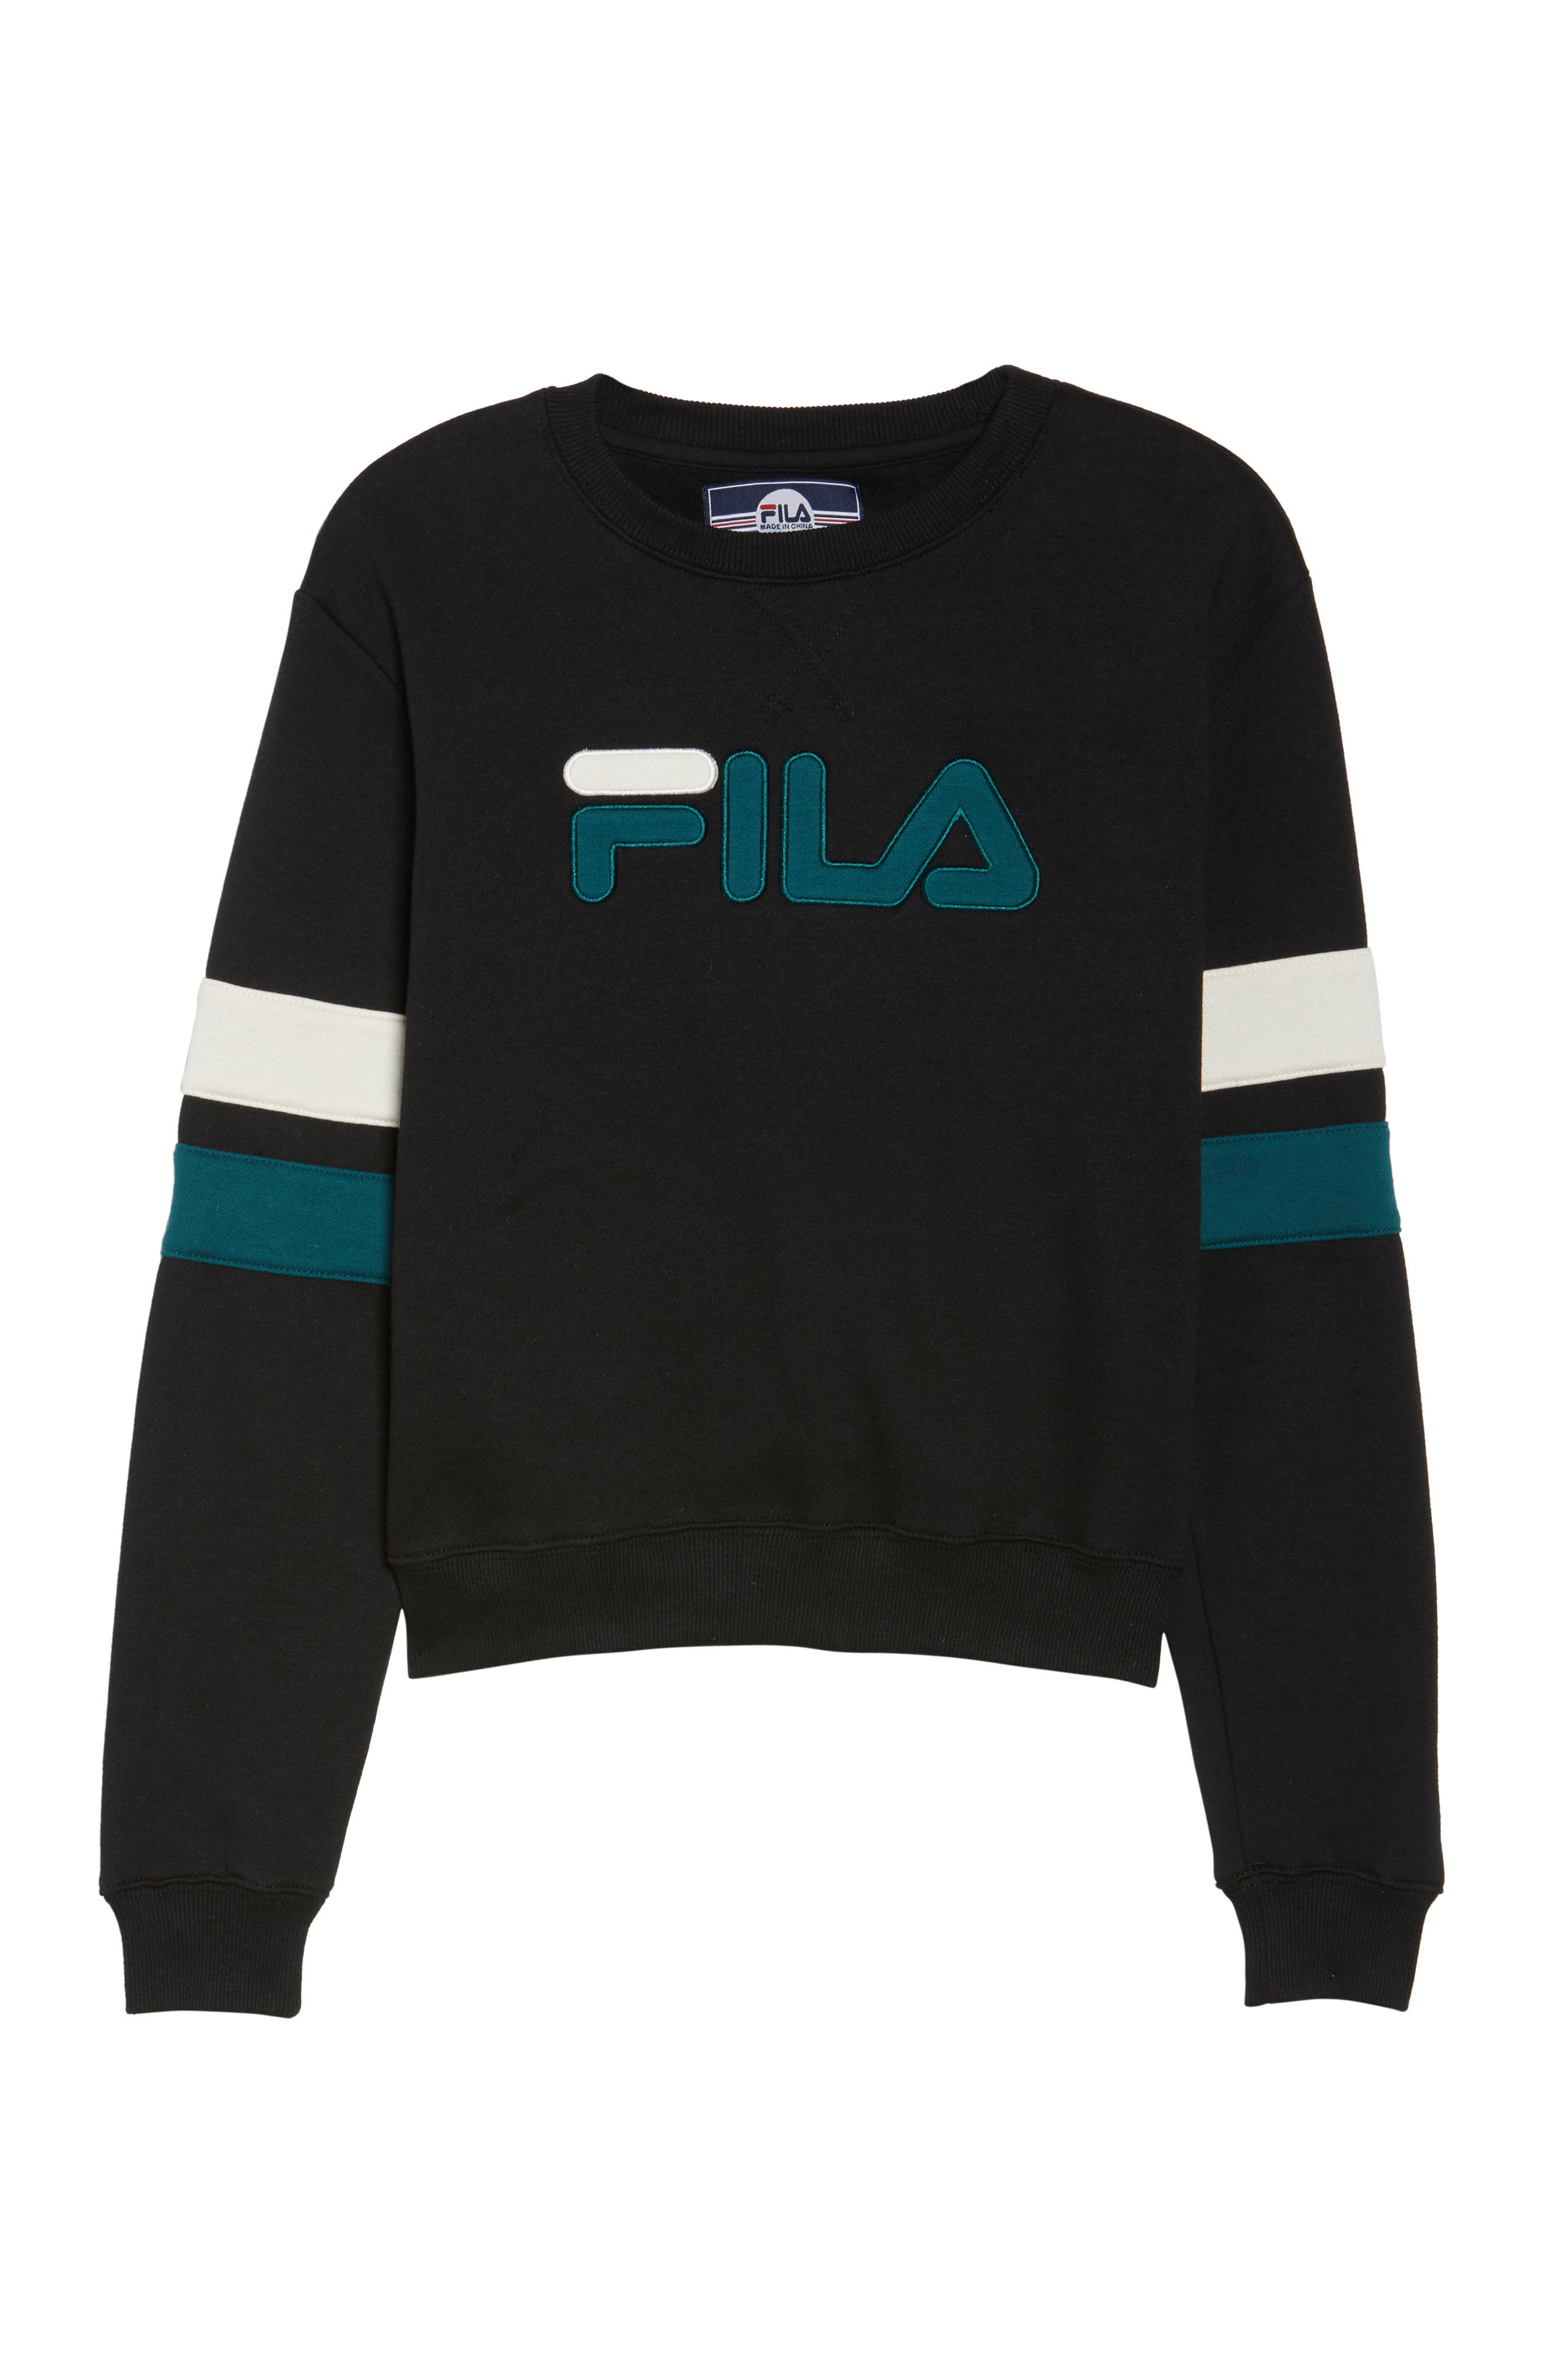 Newton Sweatshirt,                             Alternate thumbnail 7, color,                             Black/ Deep Teal/ Gardenia